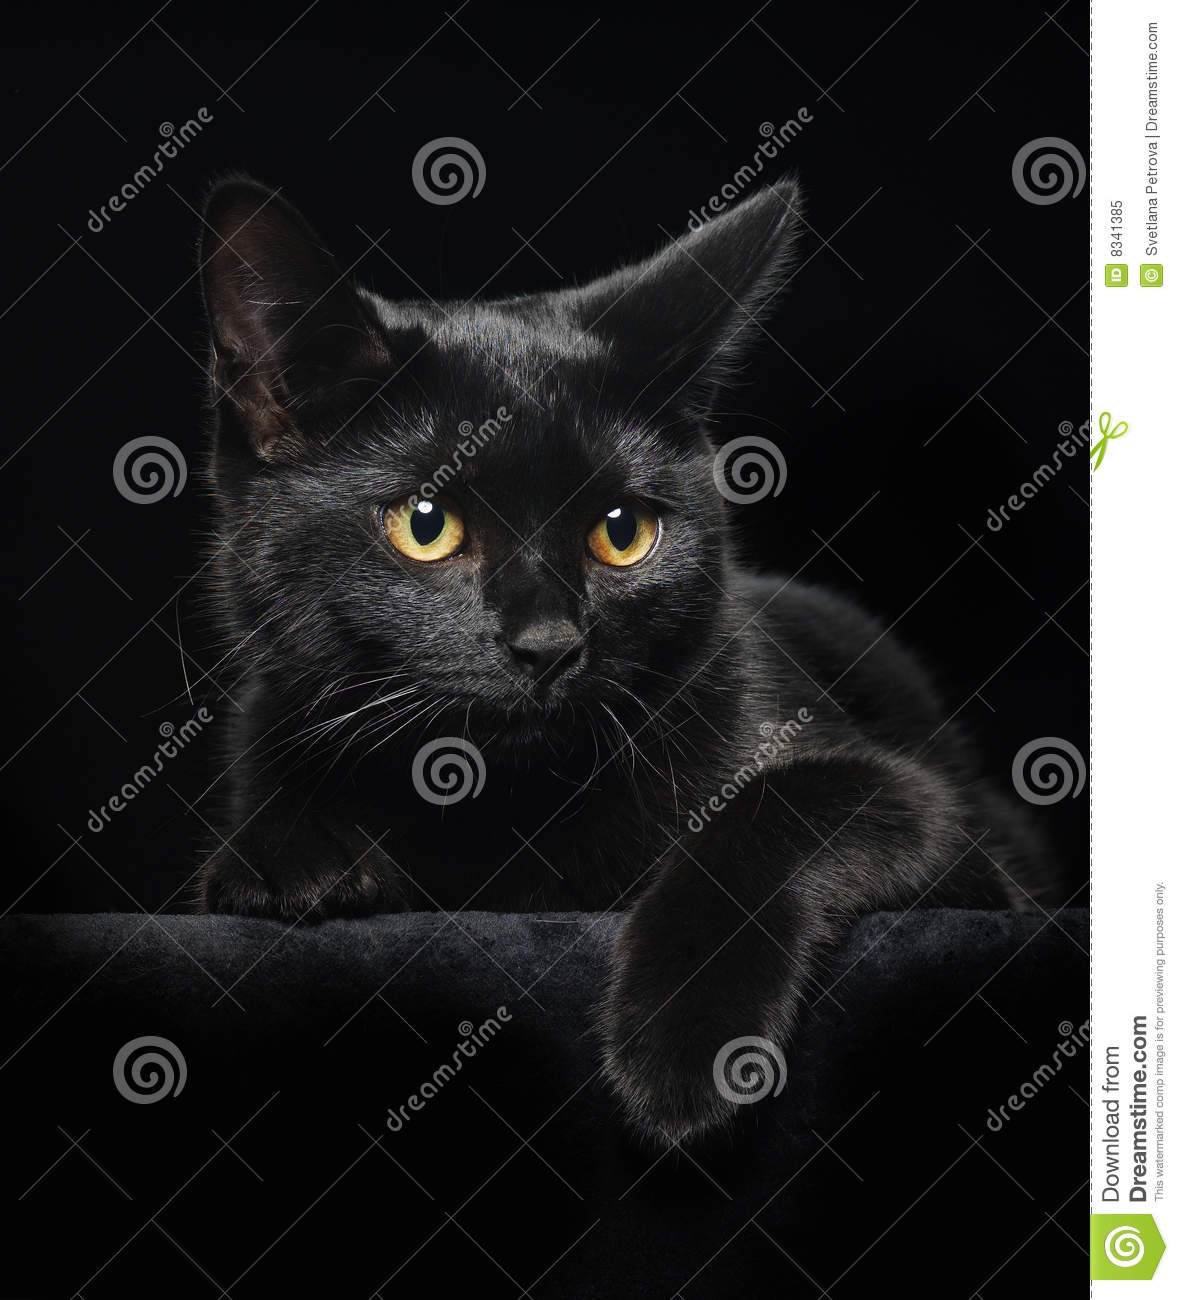 black cat yellow eyes 8341385 black cat with yellow eyes stock image image of domestic 8341385